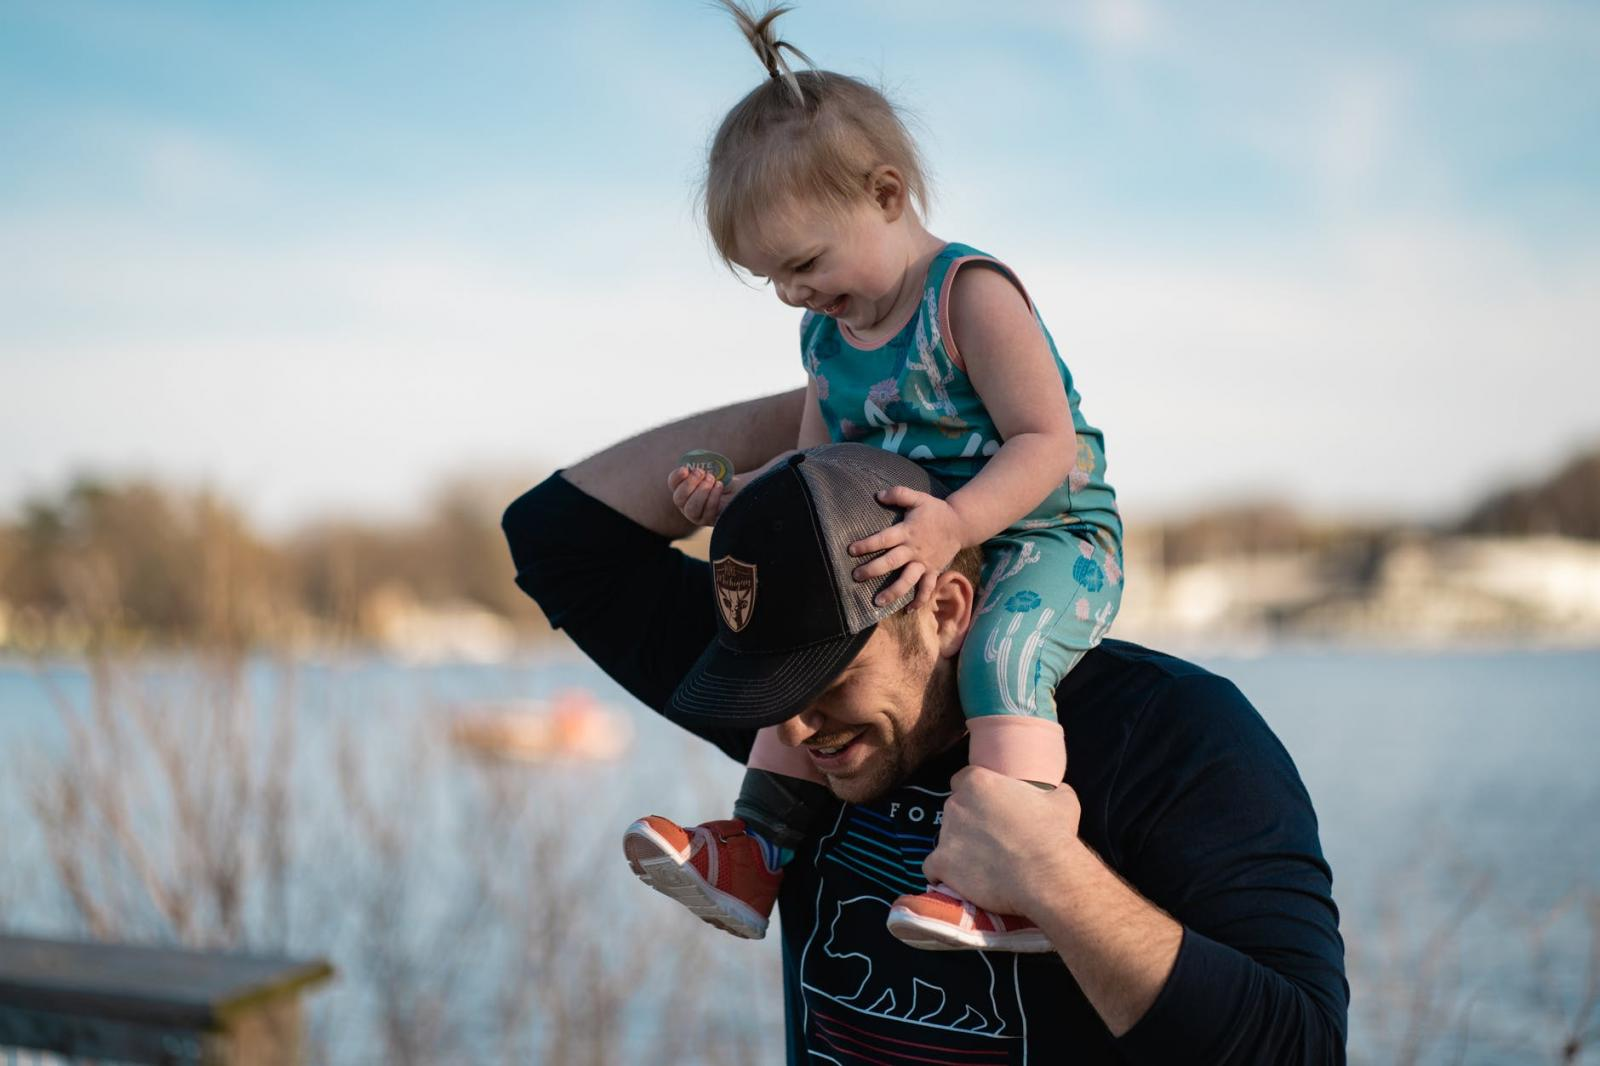 Toddlers With Overbearing Parents Can Have Wide Range Of Problems Later On